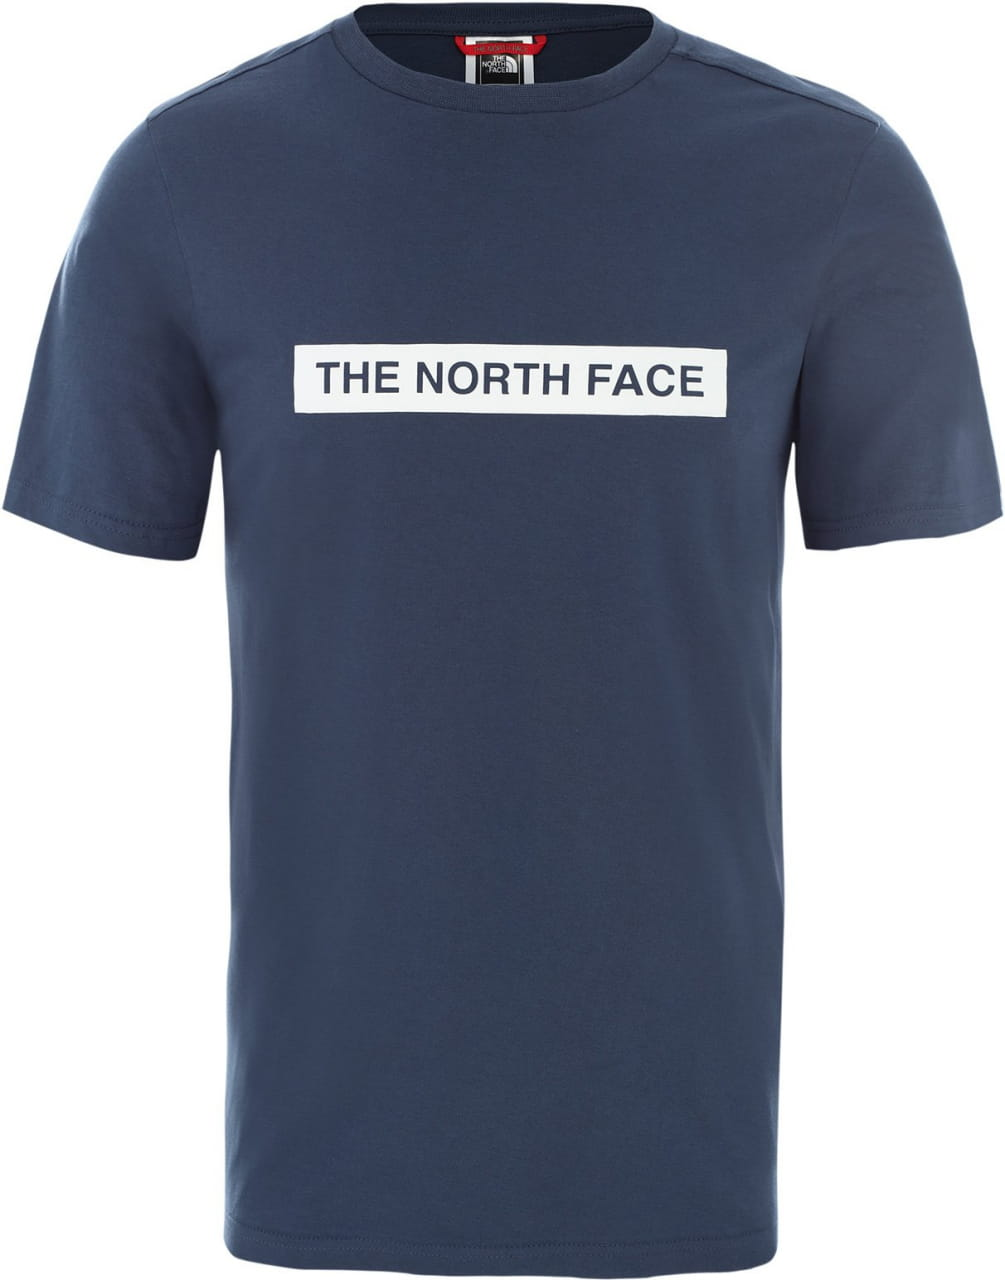 Pánské tričko The North Face Men's Light T-Shirt